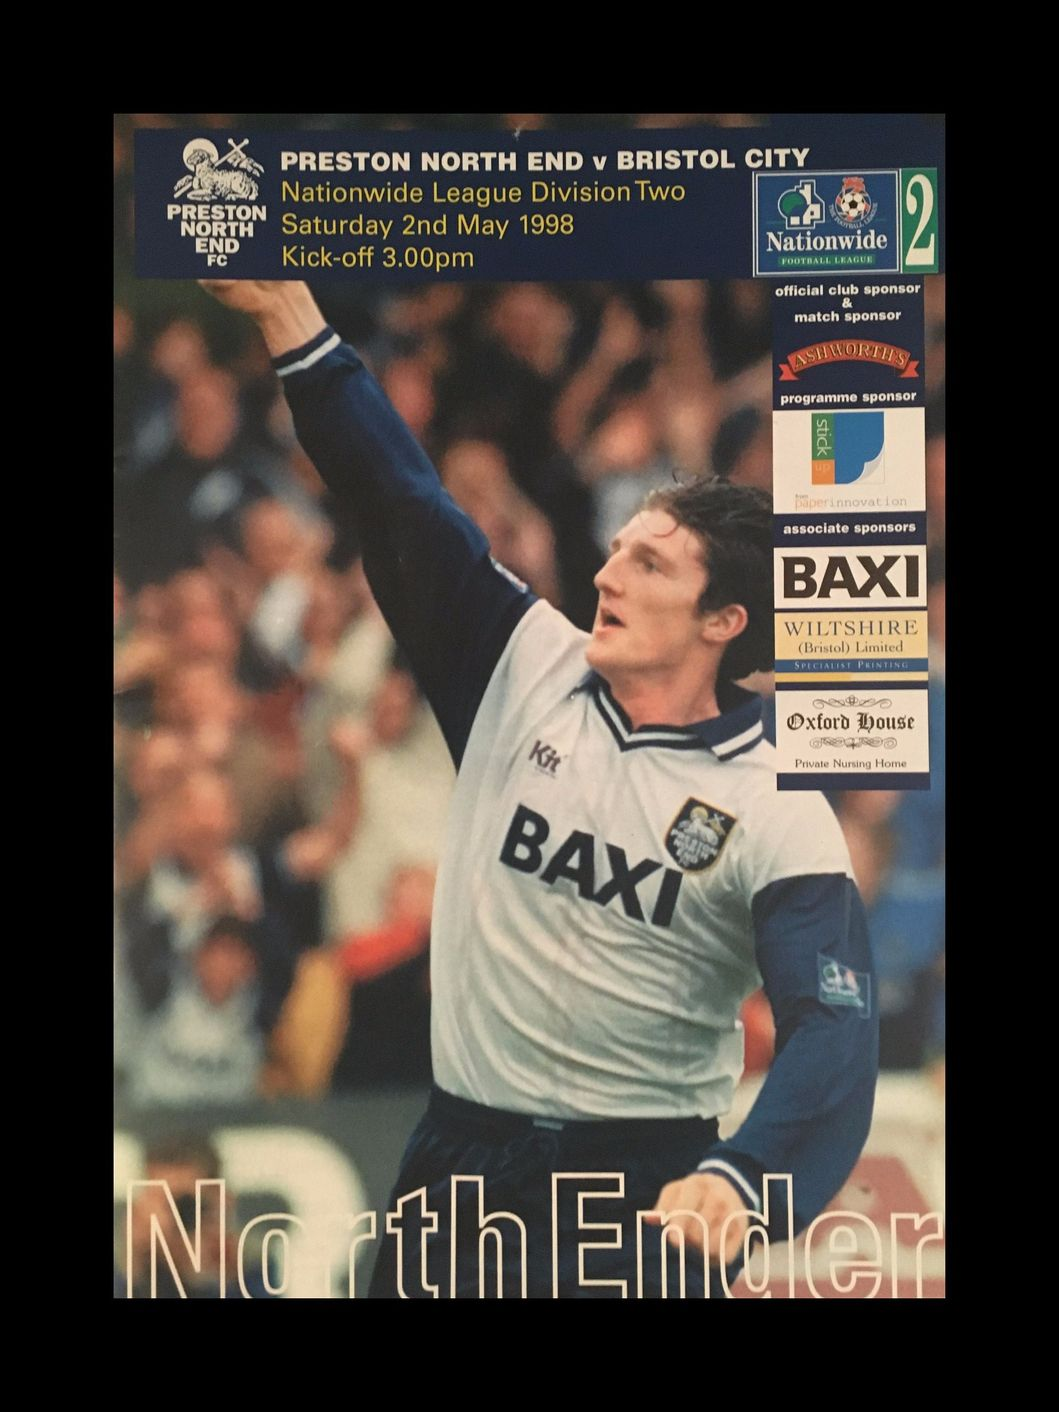 Preston North End v Bristol City 02-05-1998 Programme